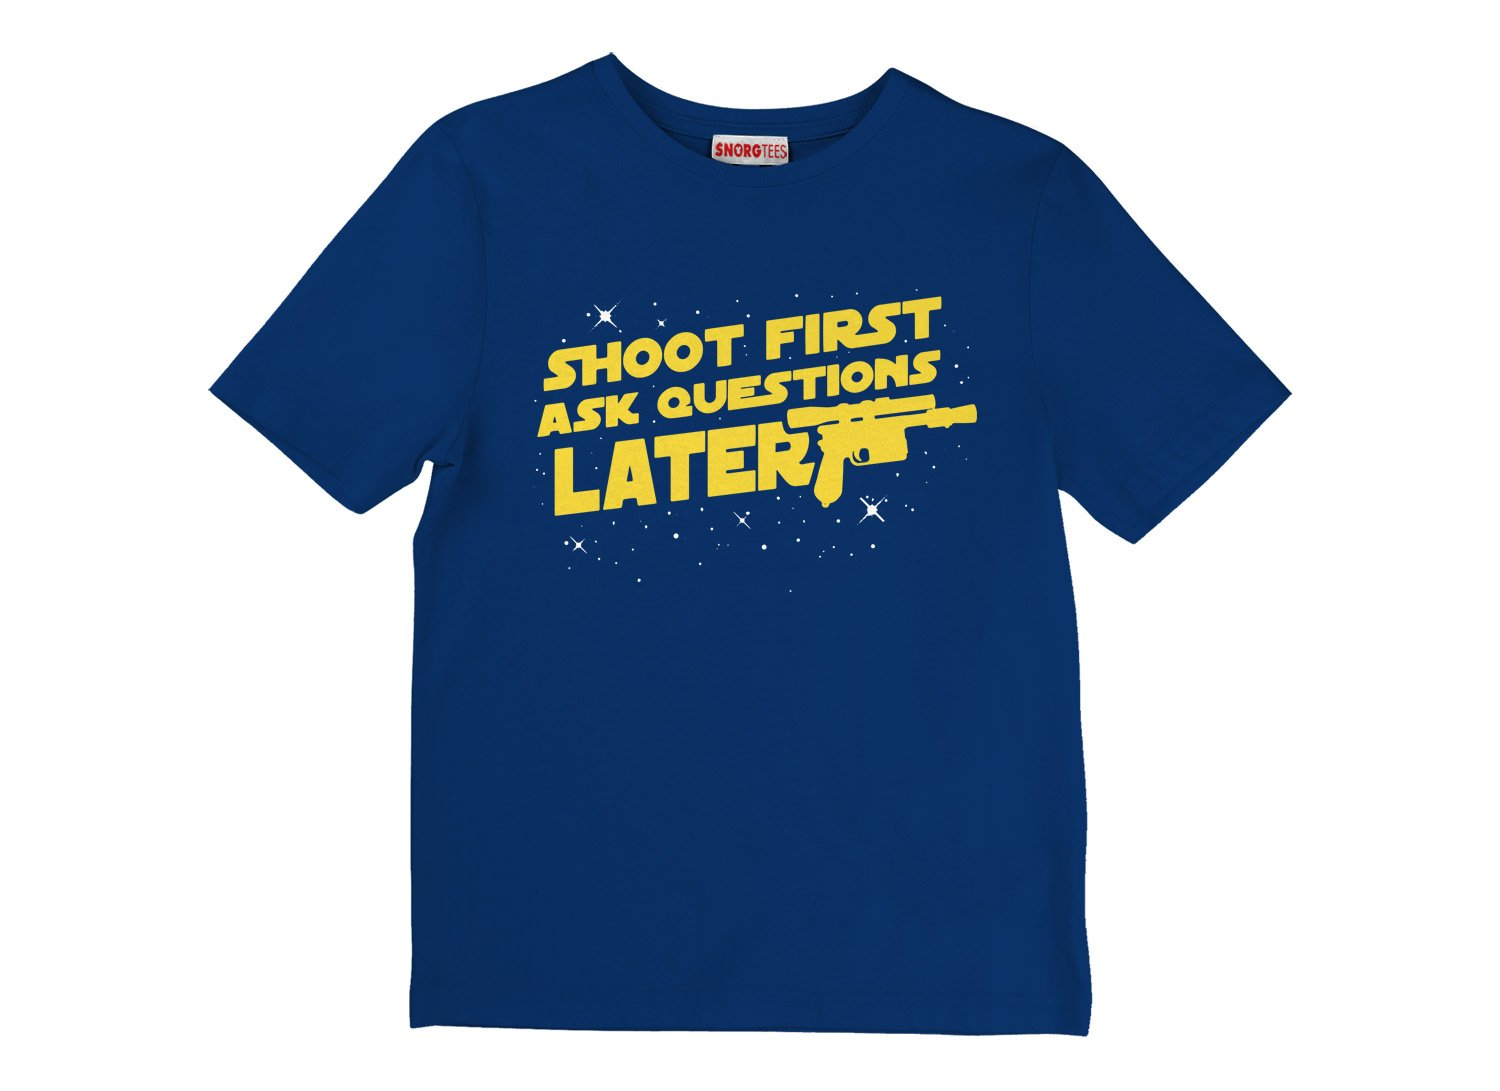 Shoot First Ask Questions Later on Kids T-Shirt